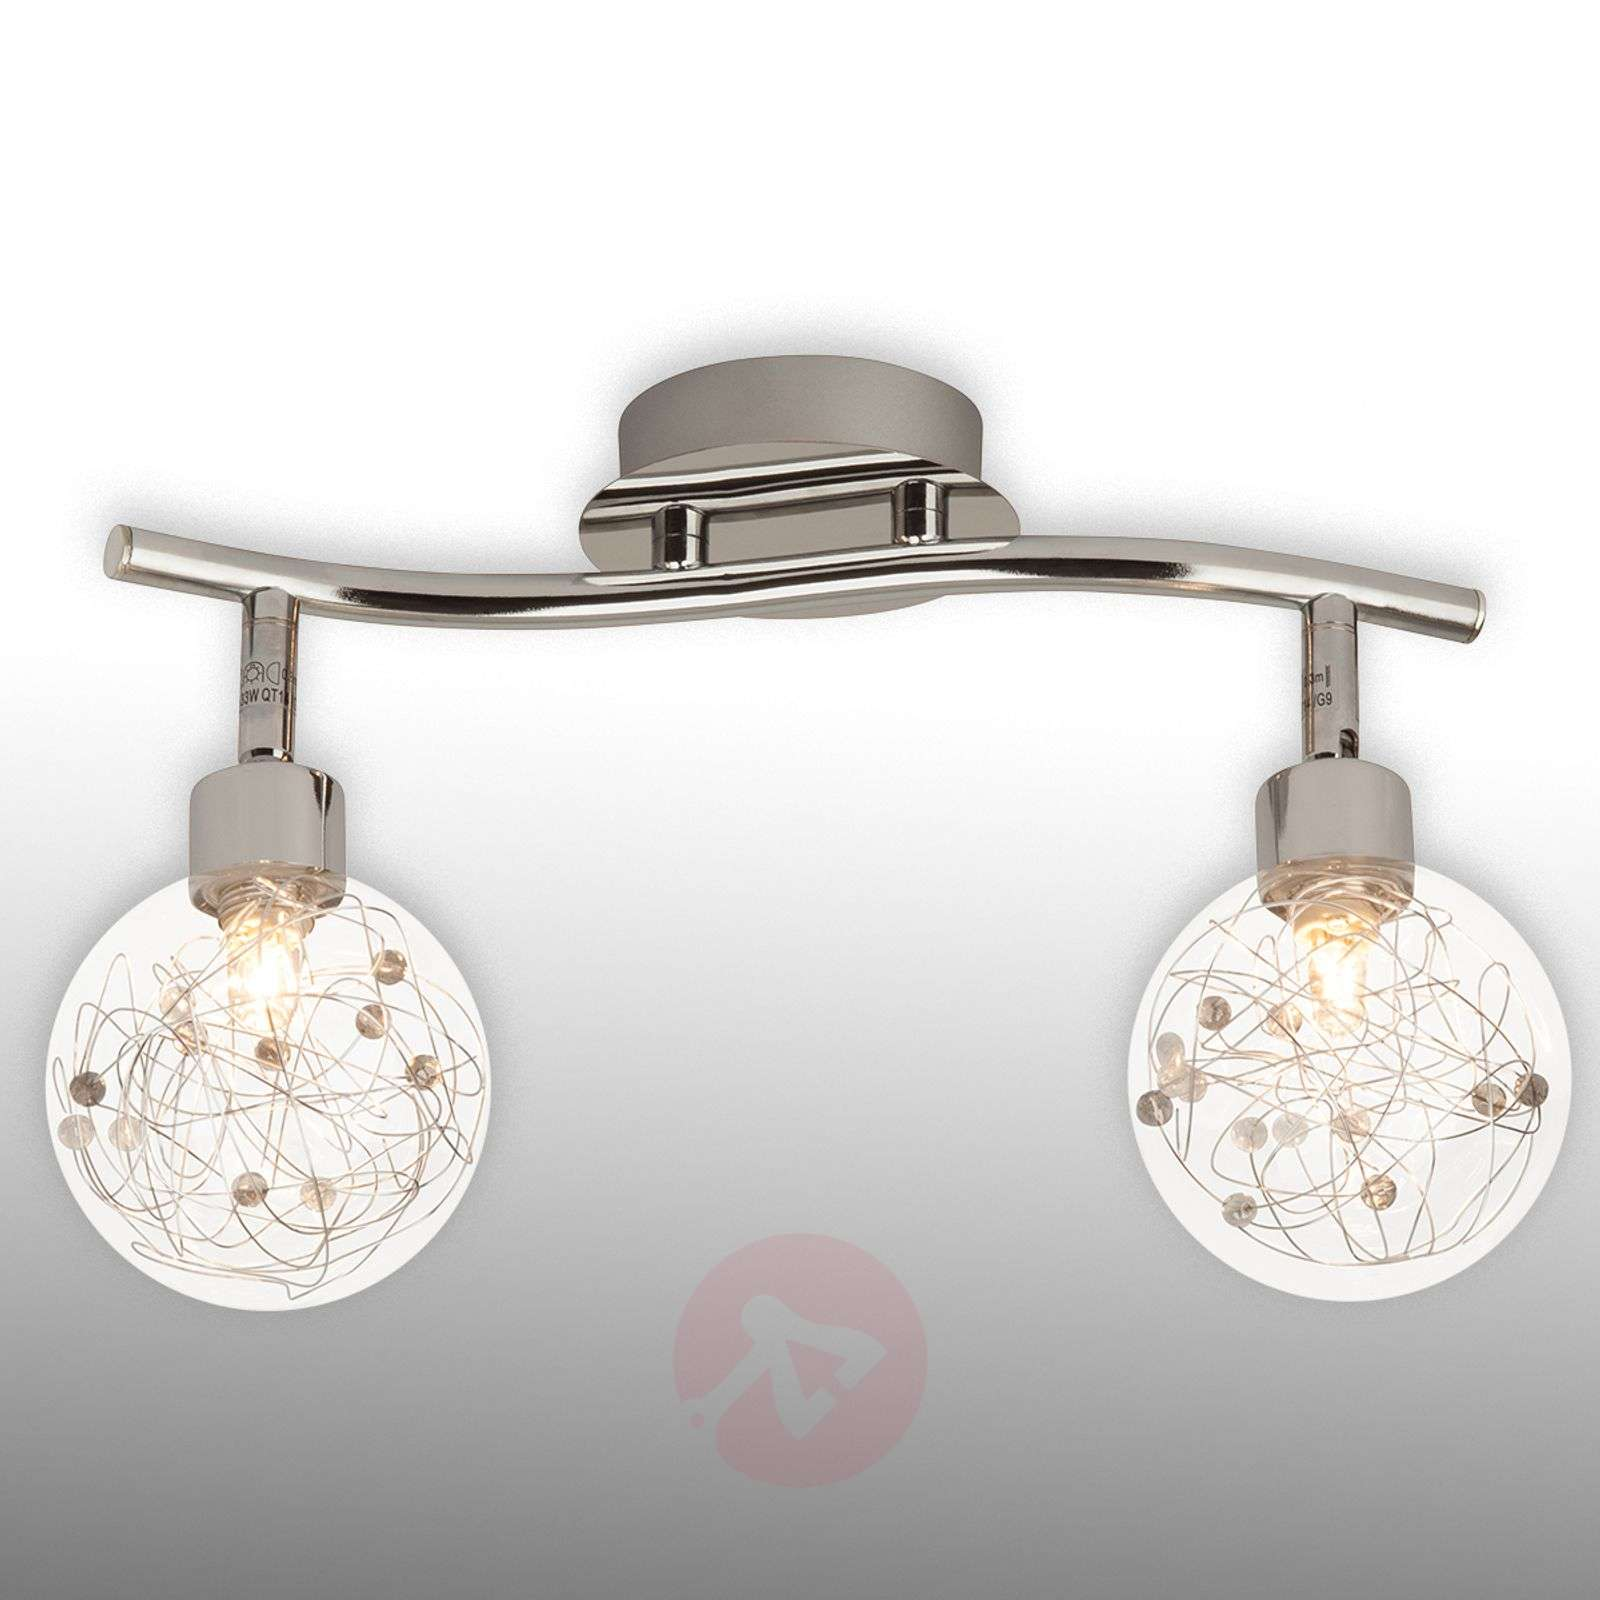 2-bulb ceiling light Joya-1509045-01